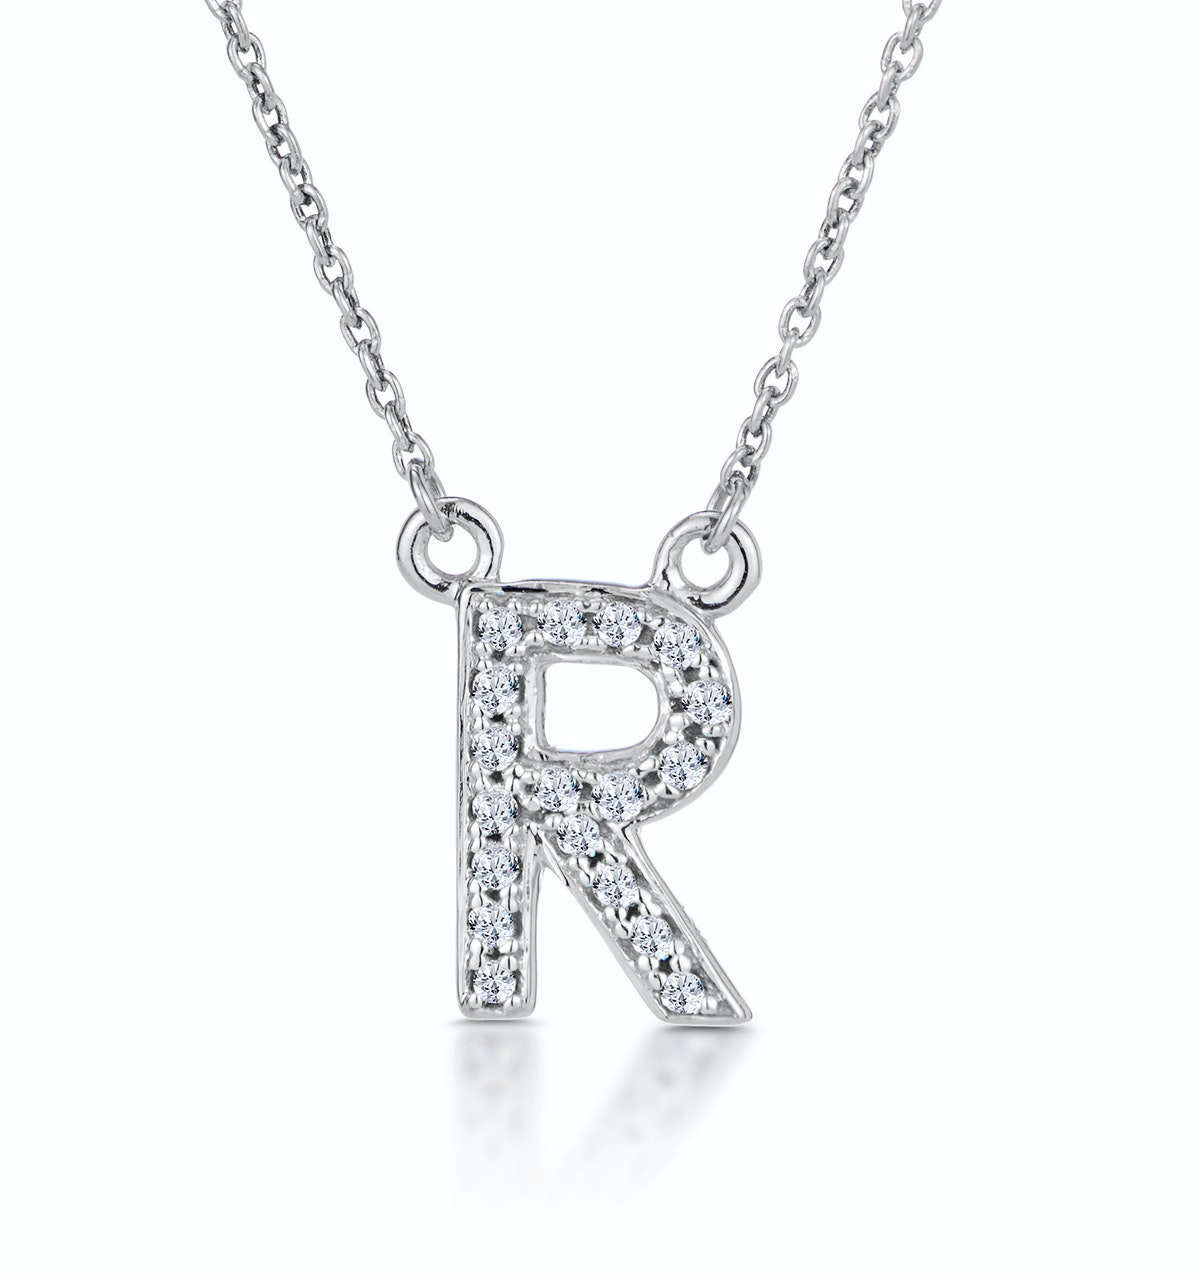 Initial 'R' Necklace Diamond Encrusted Pave Set in 9K White Gold